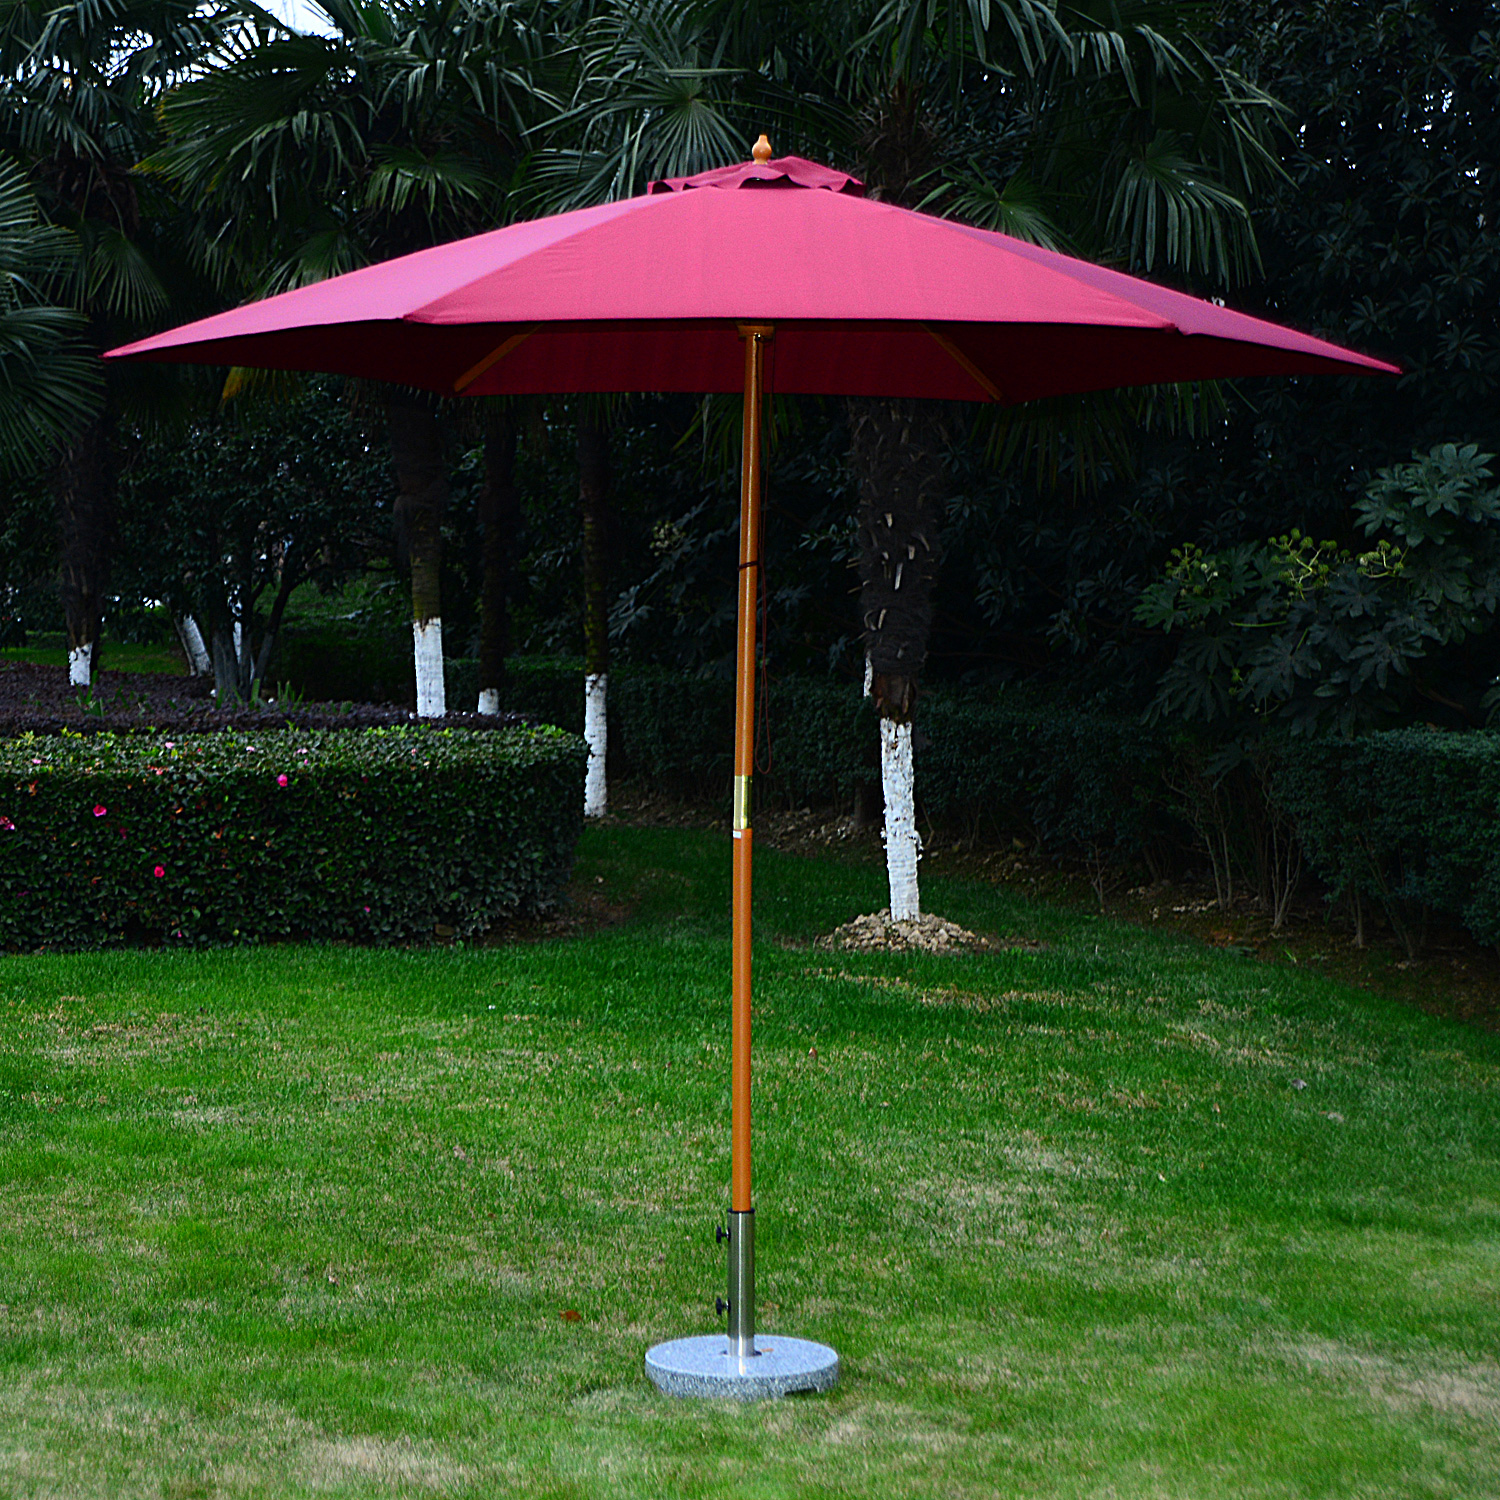 Image of CAD $59.99 Outsunny 9 ft Patio Umbrella Wood Solar Sunshade - red wine / ?9' x 8'H Wooden Round Market Sun Outdoor Canopy Canada 46655319418